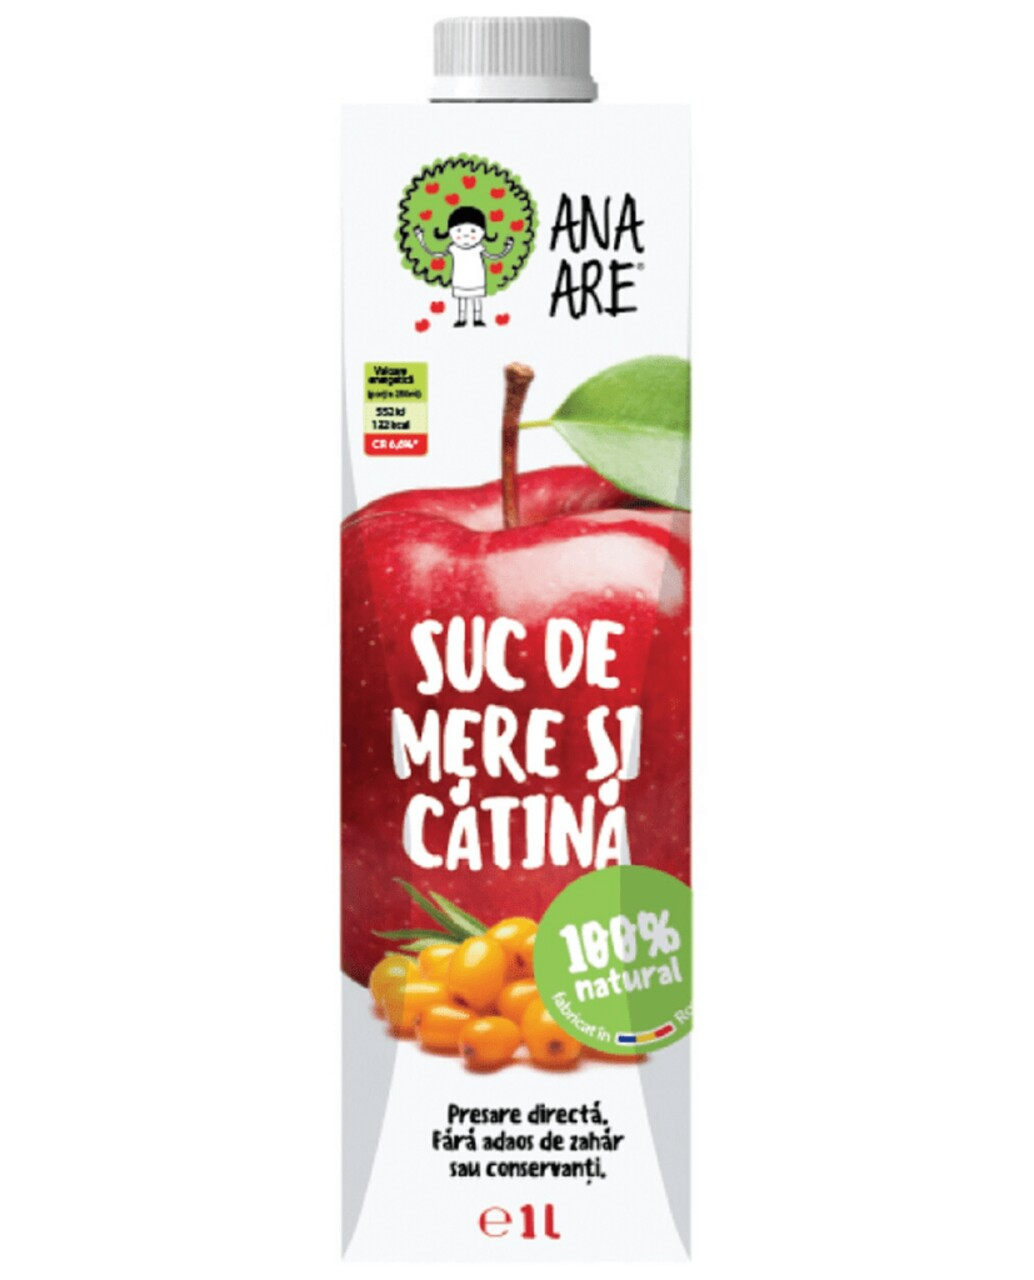 Suc de Mere & Catina 100% Natural Ana Are 12X 1L